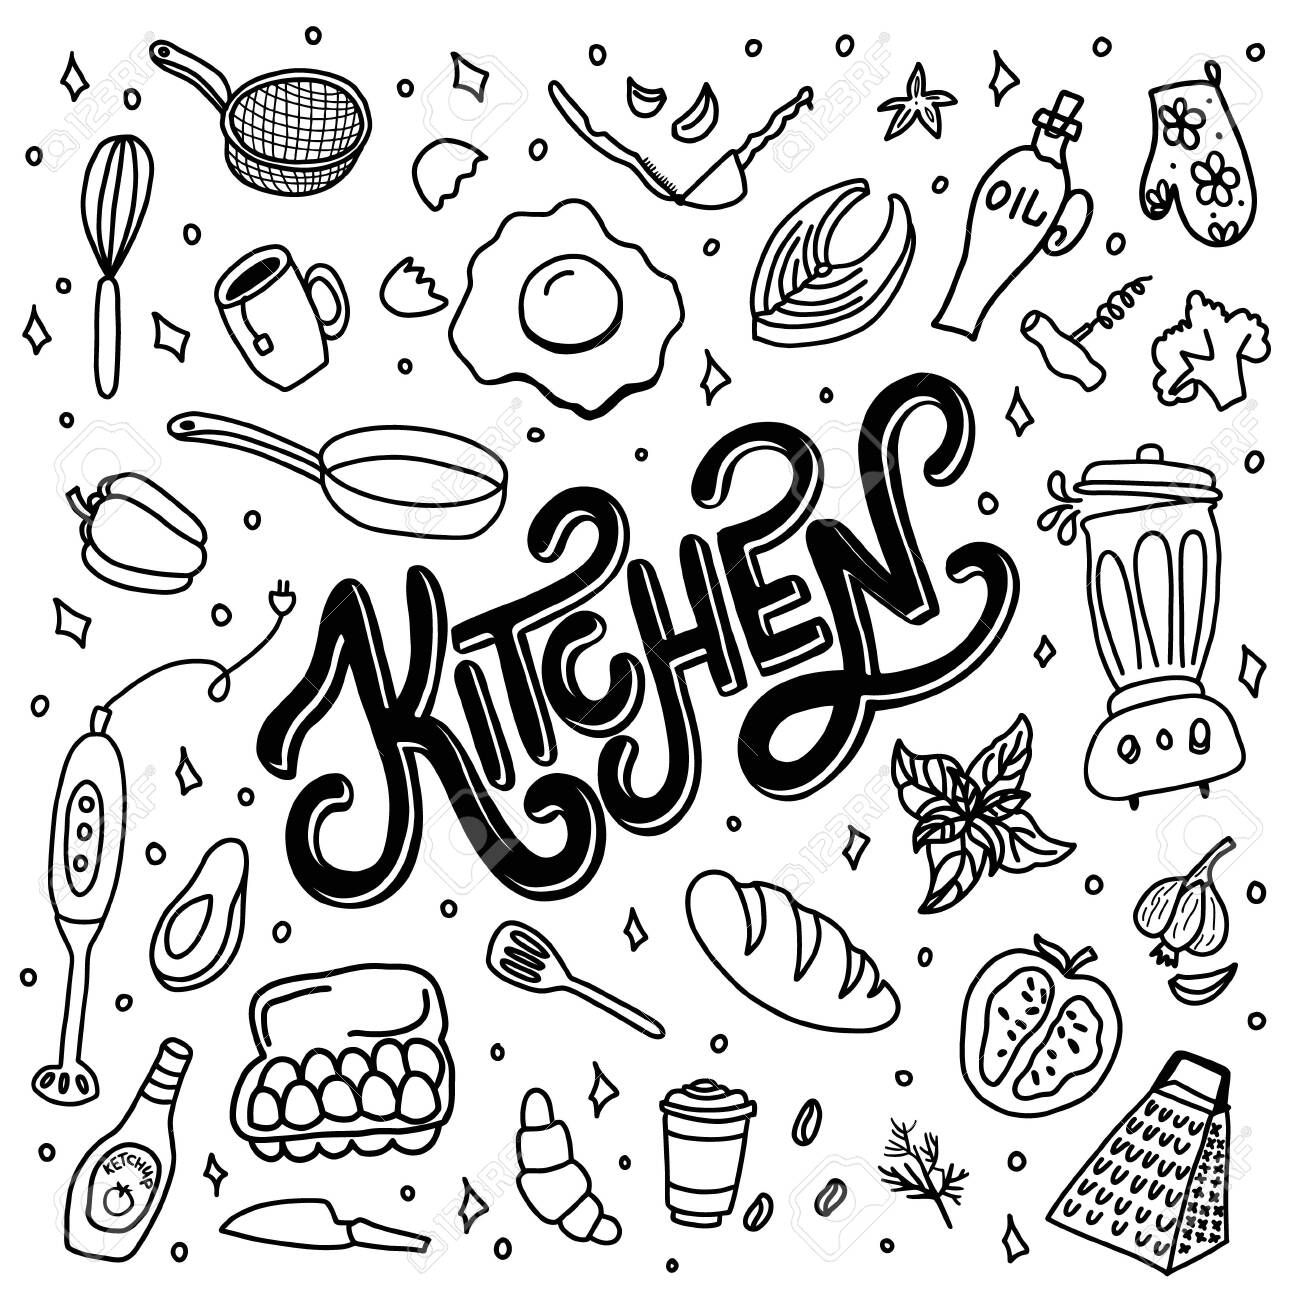 Hand drawn doodles of food and kitchen items - 151189704